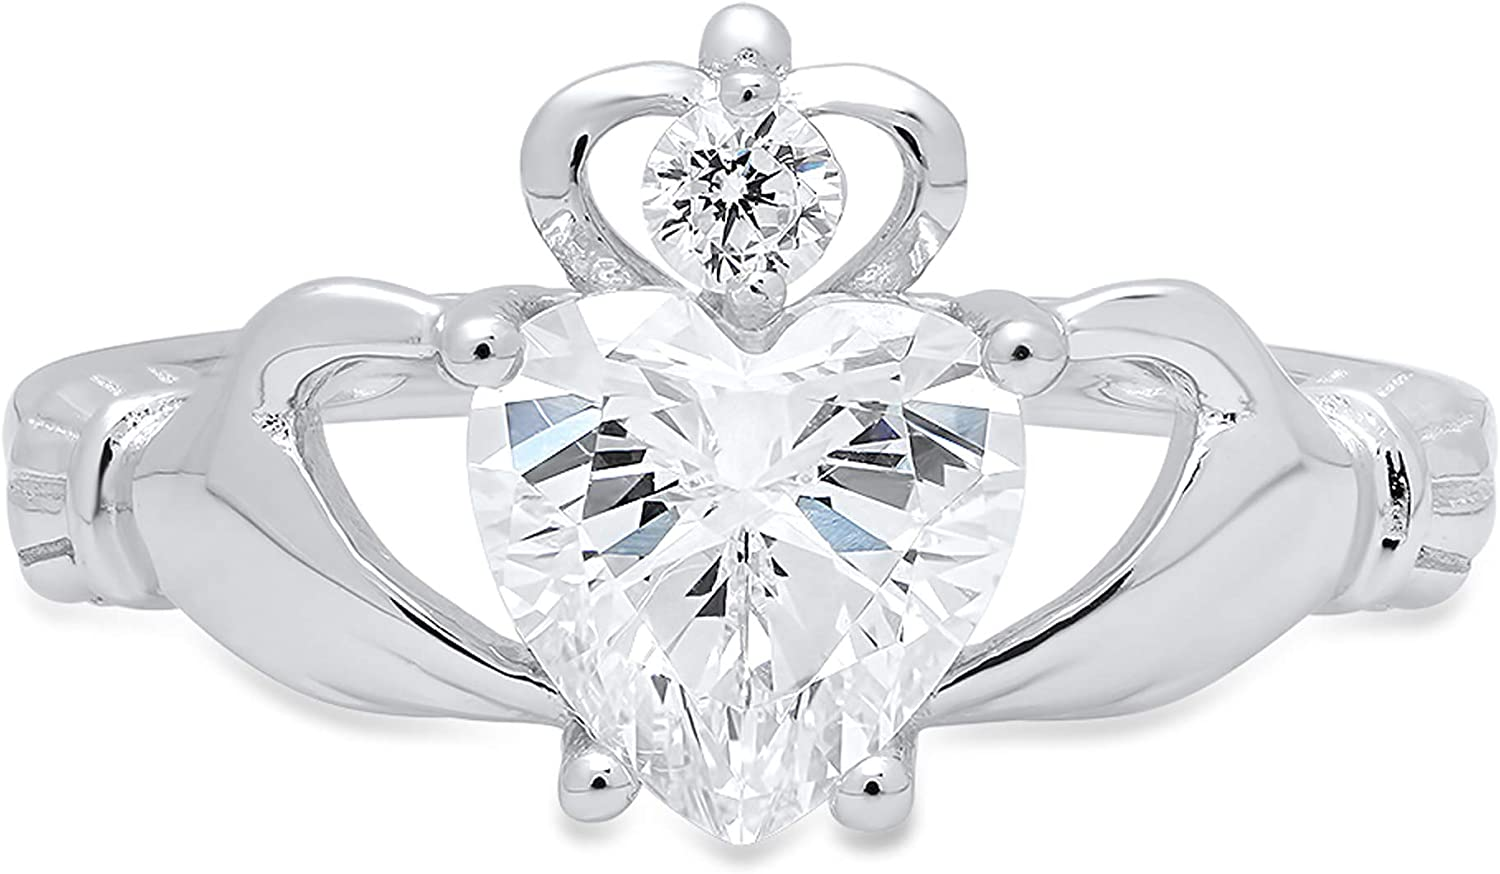 1.52ct Heart Cut Irish Celtic Claddagh Solitaire Accent Genuine Moissanite Ideal VVS1 D & Simulated Diamond Designer Modern Statement Ring Solid 14k White Gold